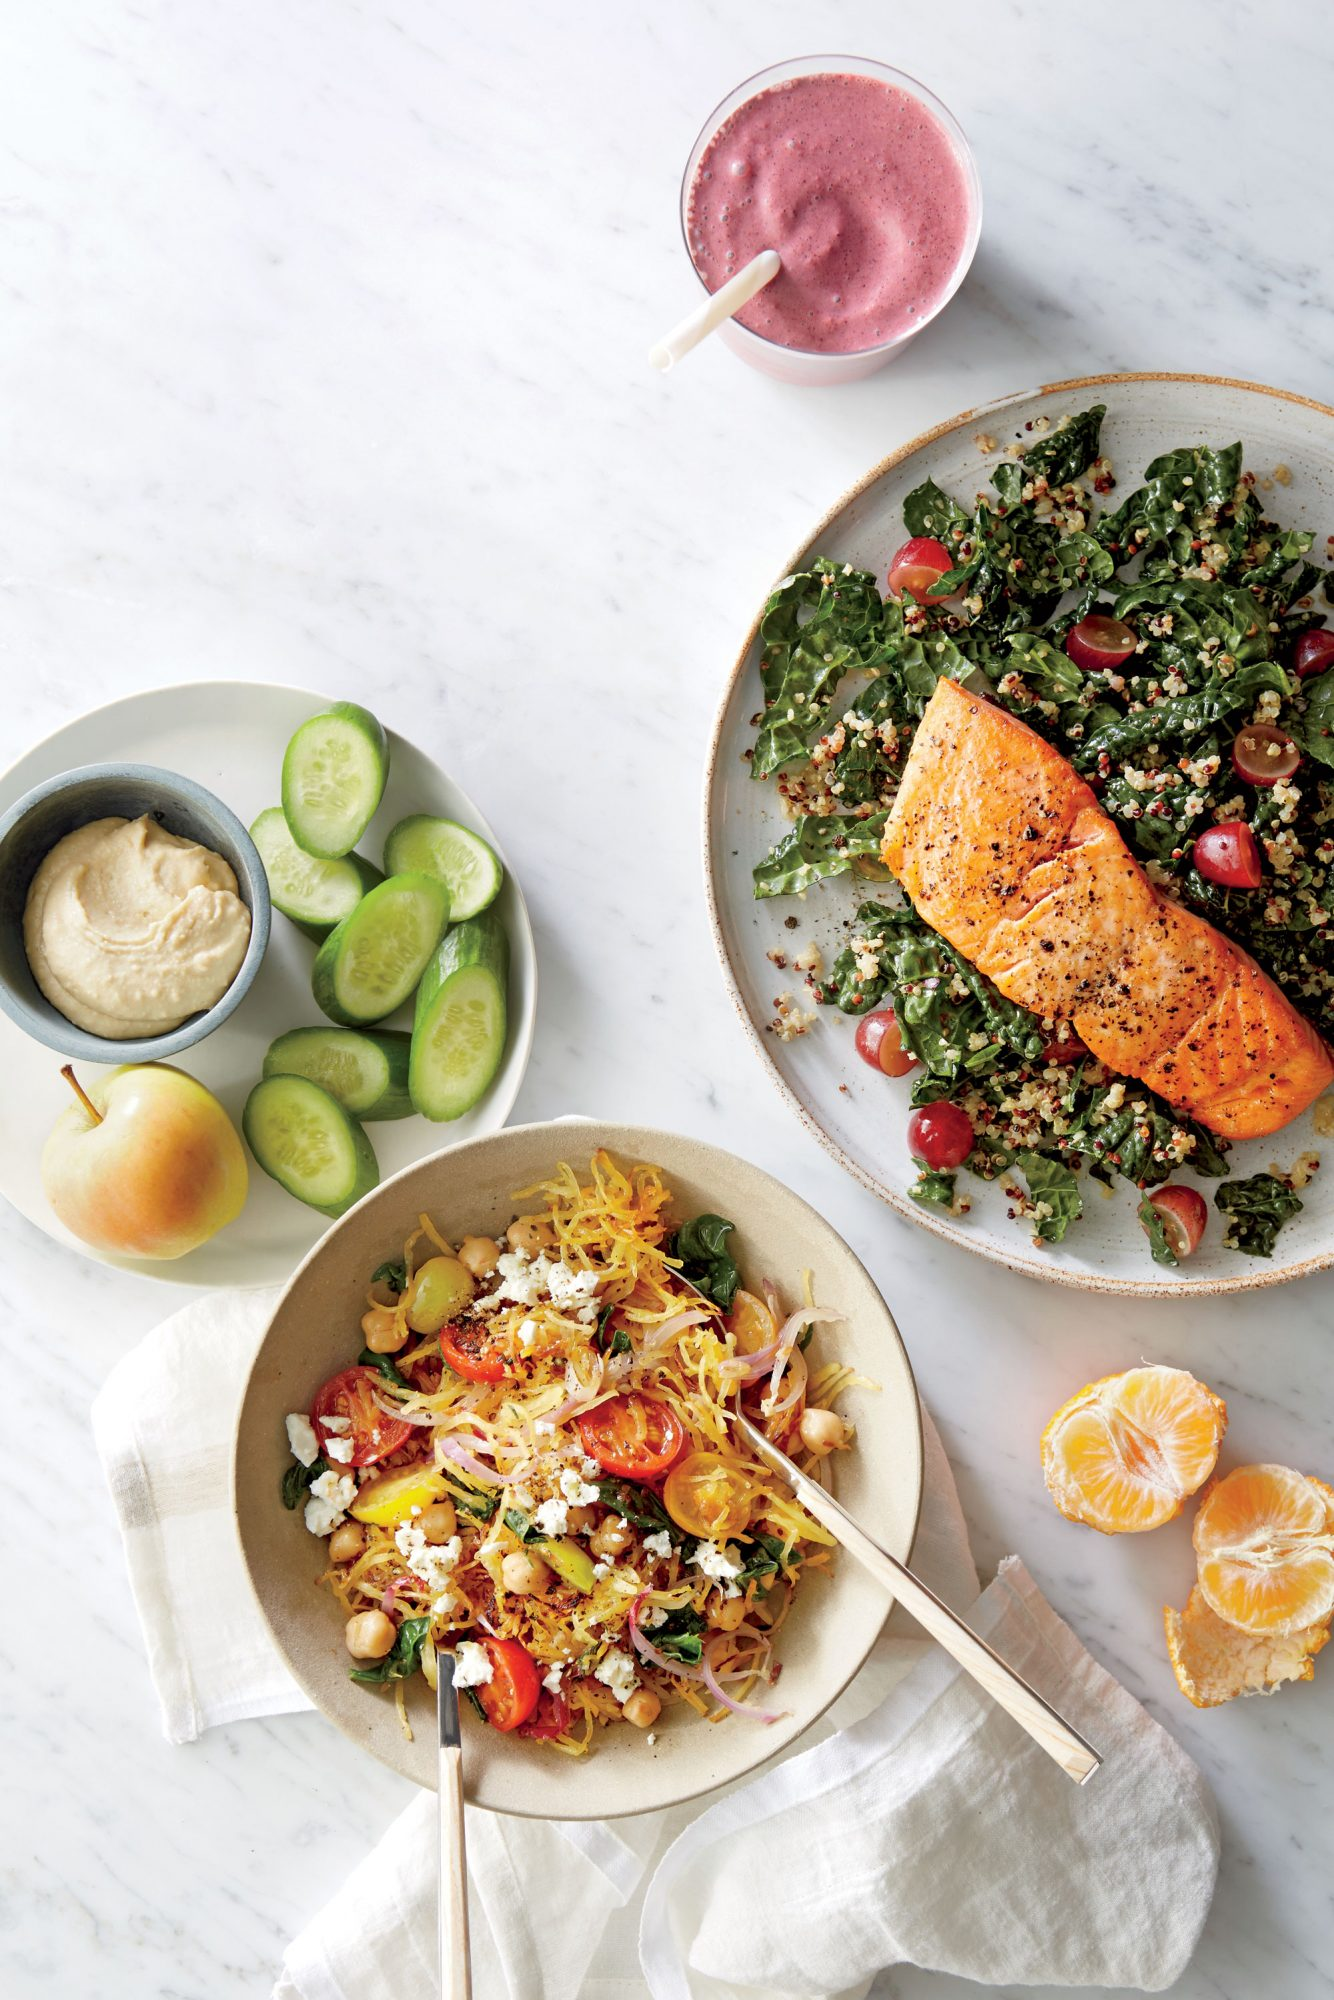 Roasted Salmon With Kalequinoa Salad Recipefresh Salmon In Its Simplest  Form, Roasted With